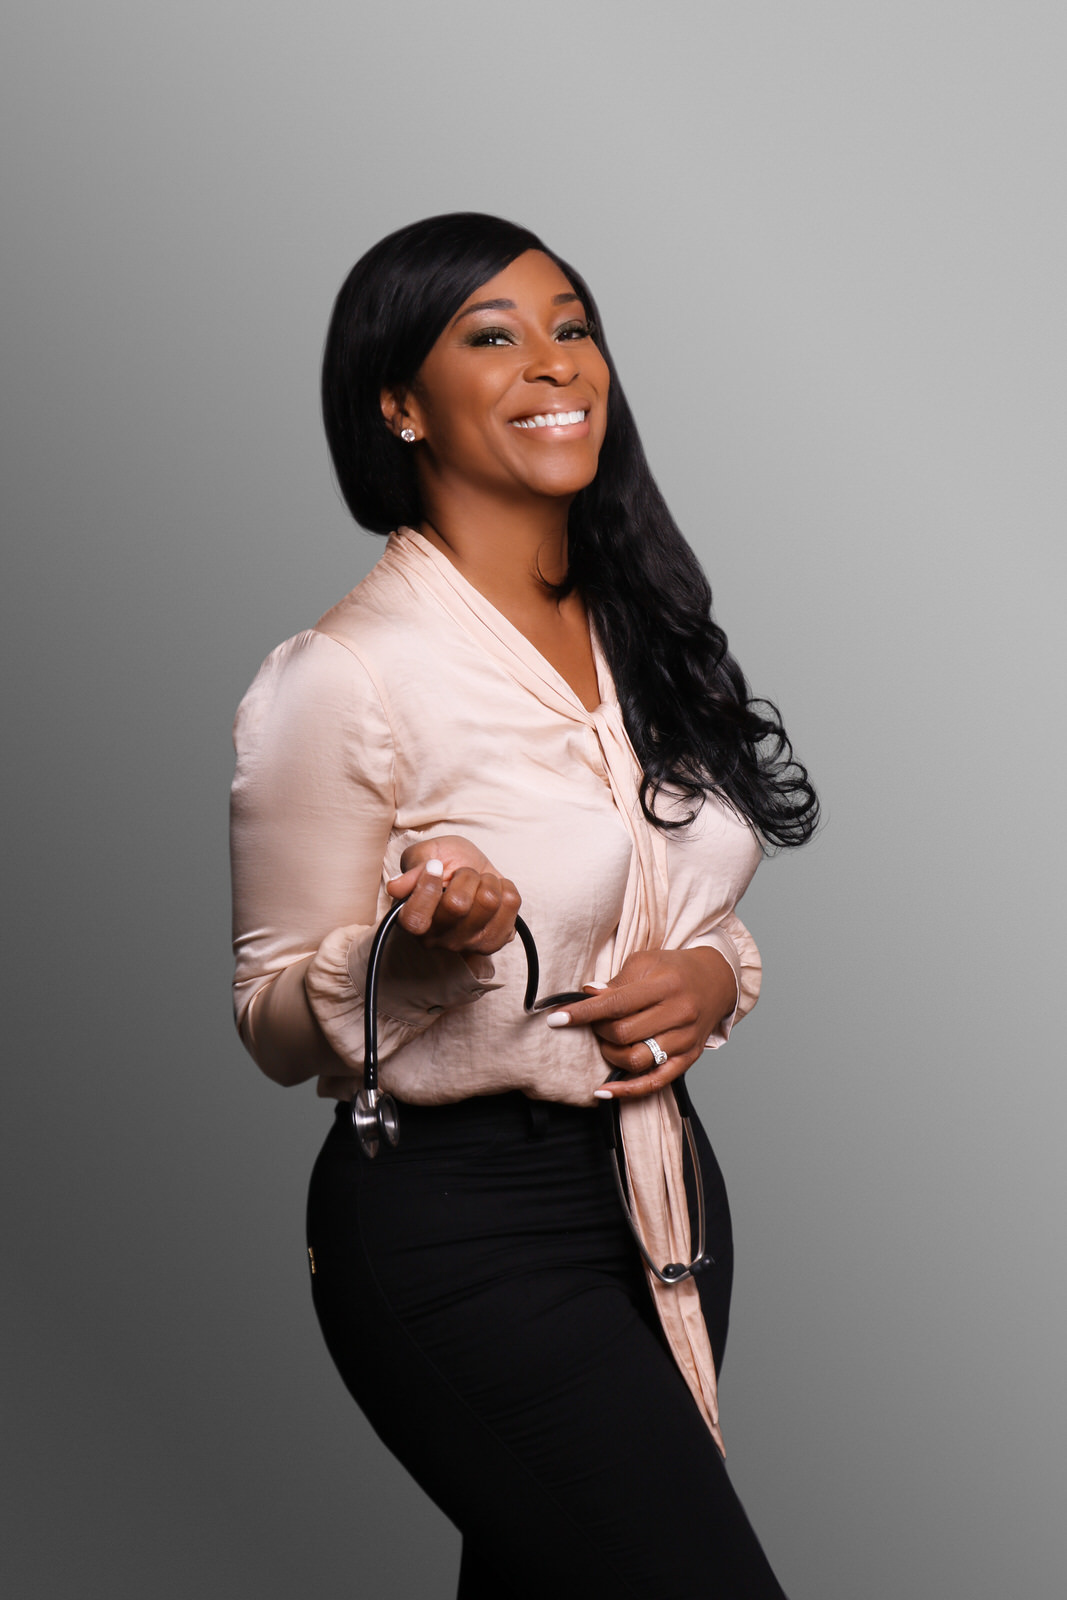 African-American woman in beige blouse and black pants holding stethoscope, gray background.jpg